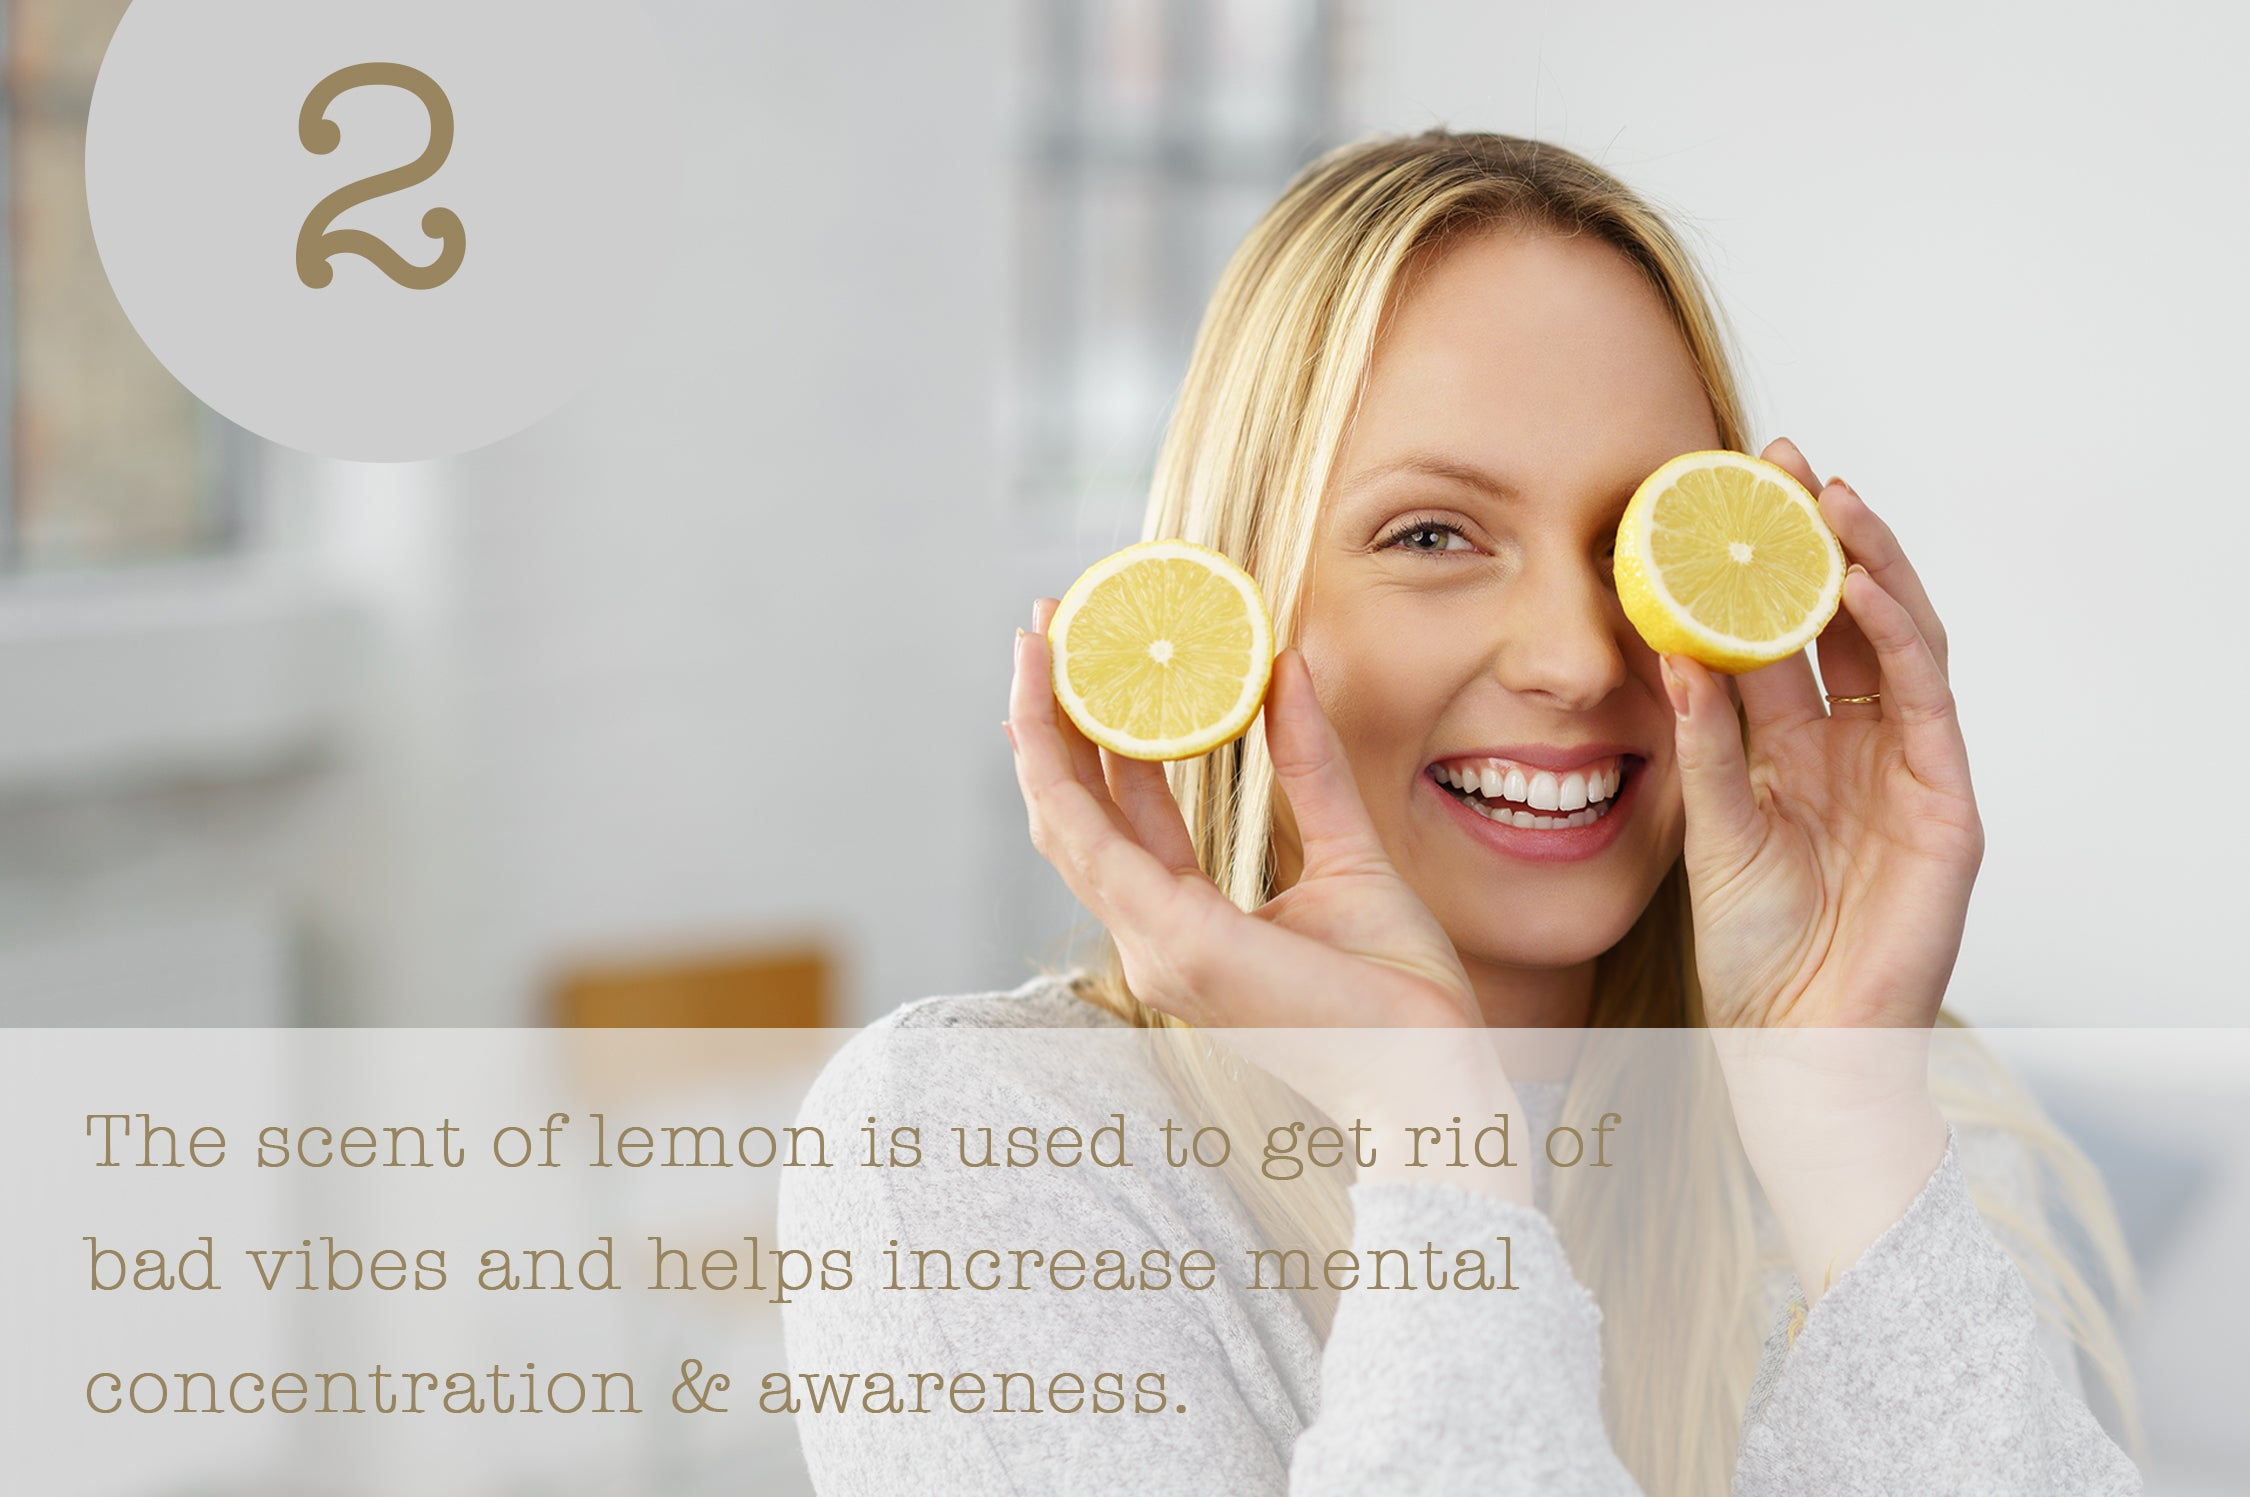 The scent of lemon is used to get rid of bad vibes and helps increase mental concentration & awareness.